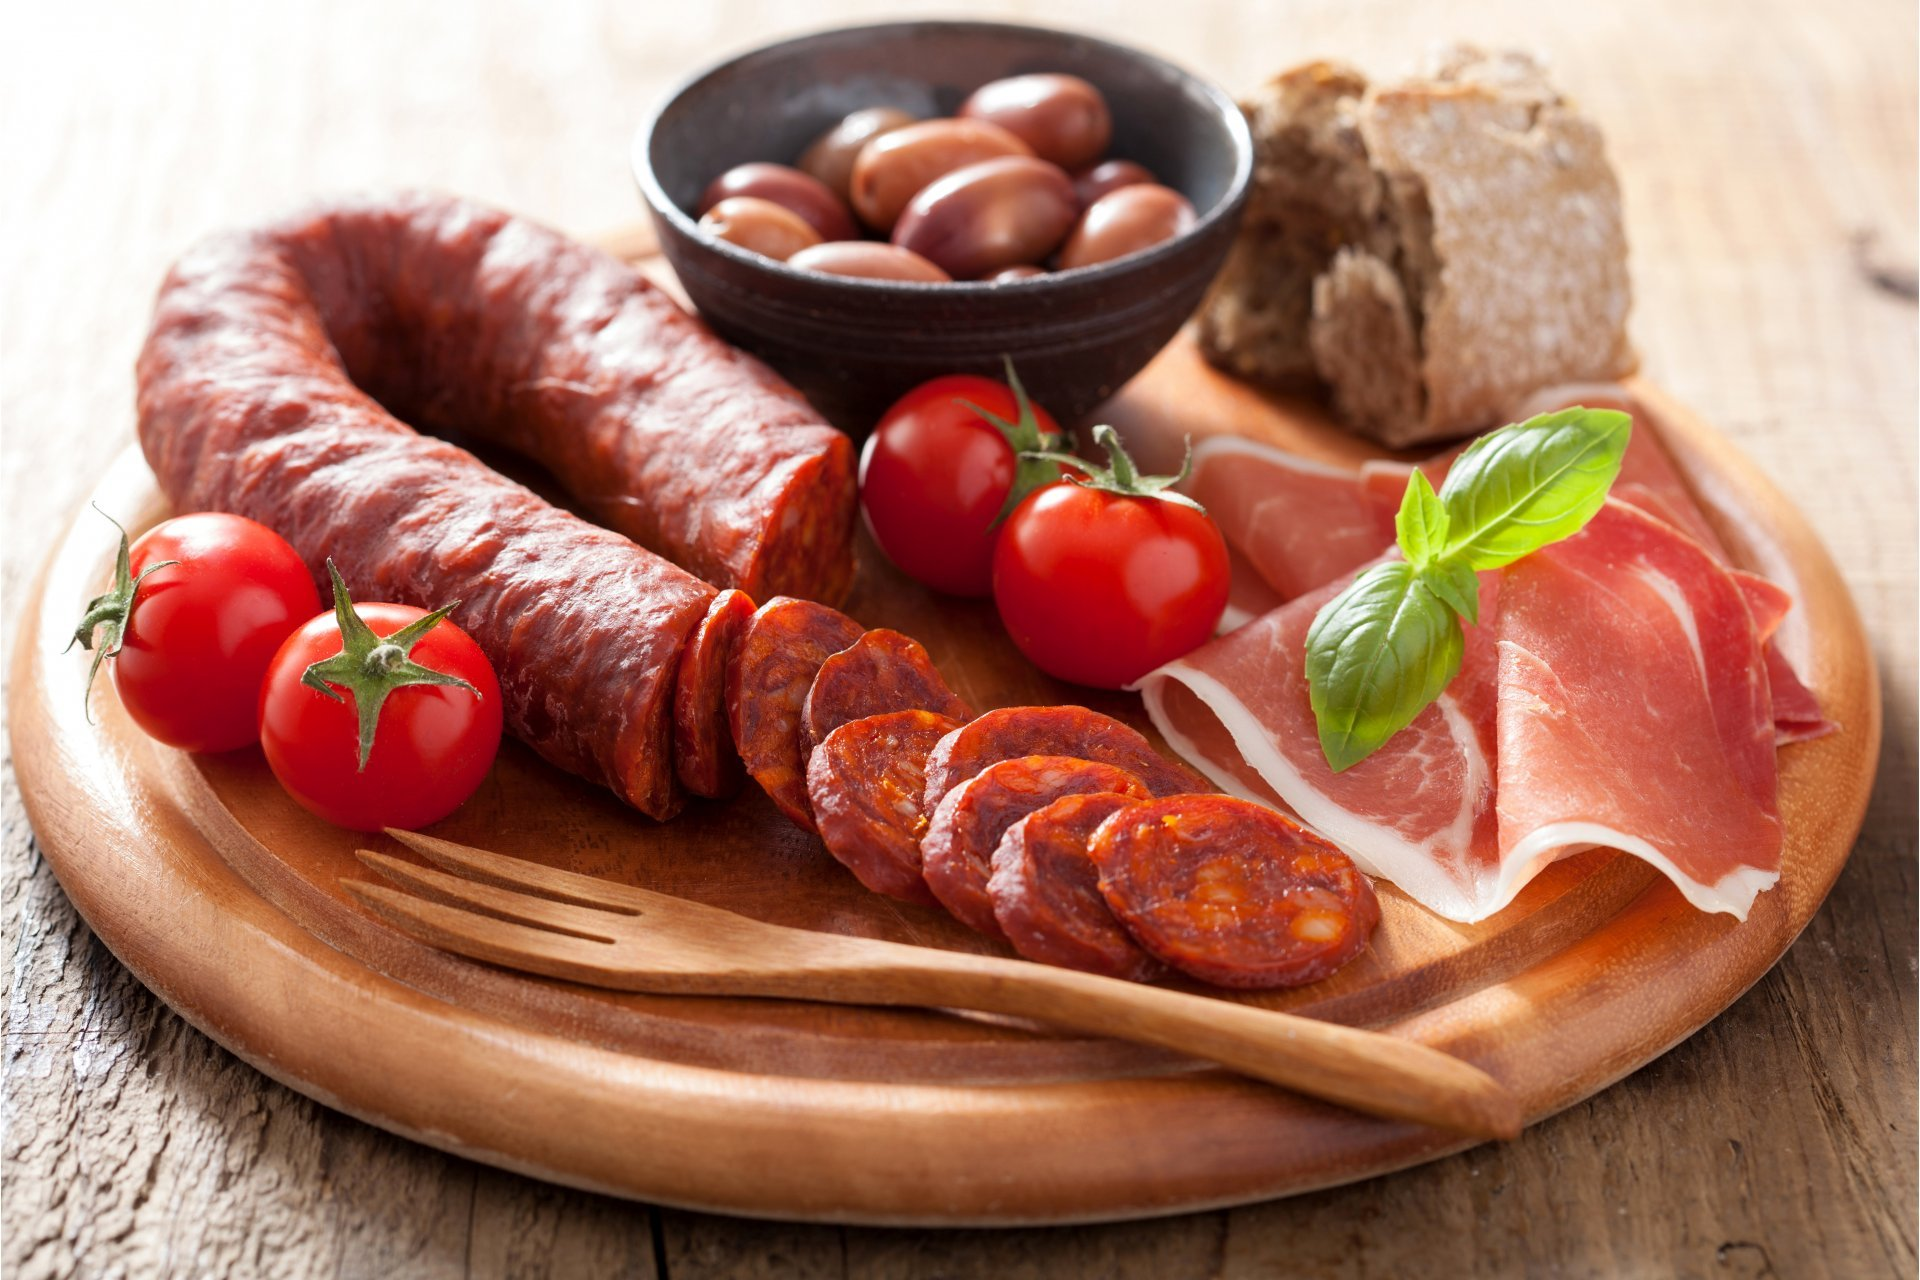 meat products sausage ham tomatoes food photo HD wallpaper 1920x1280